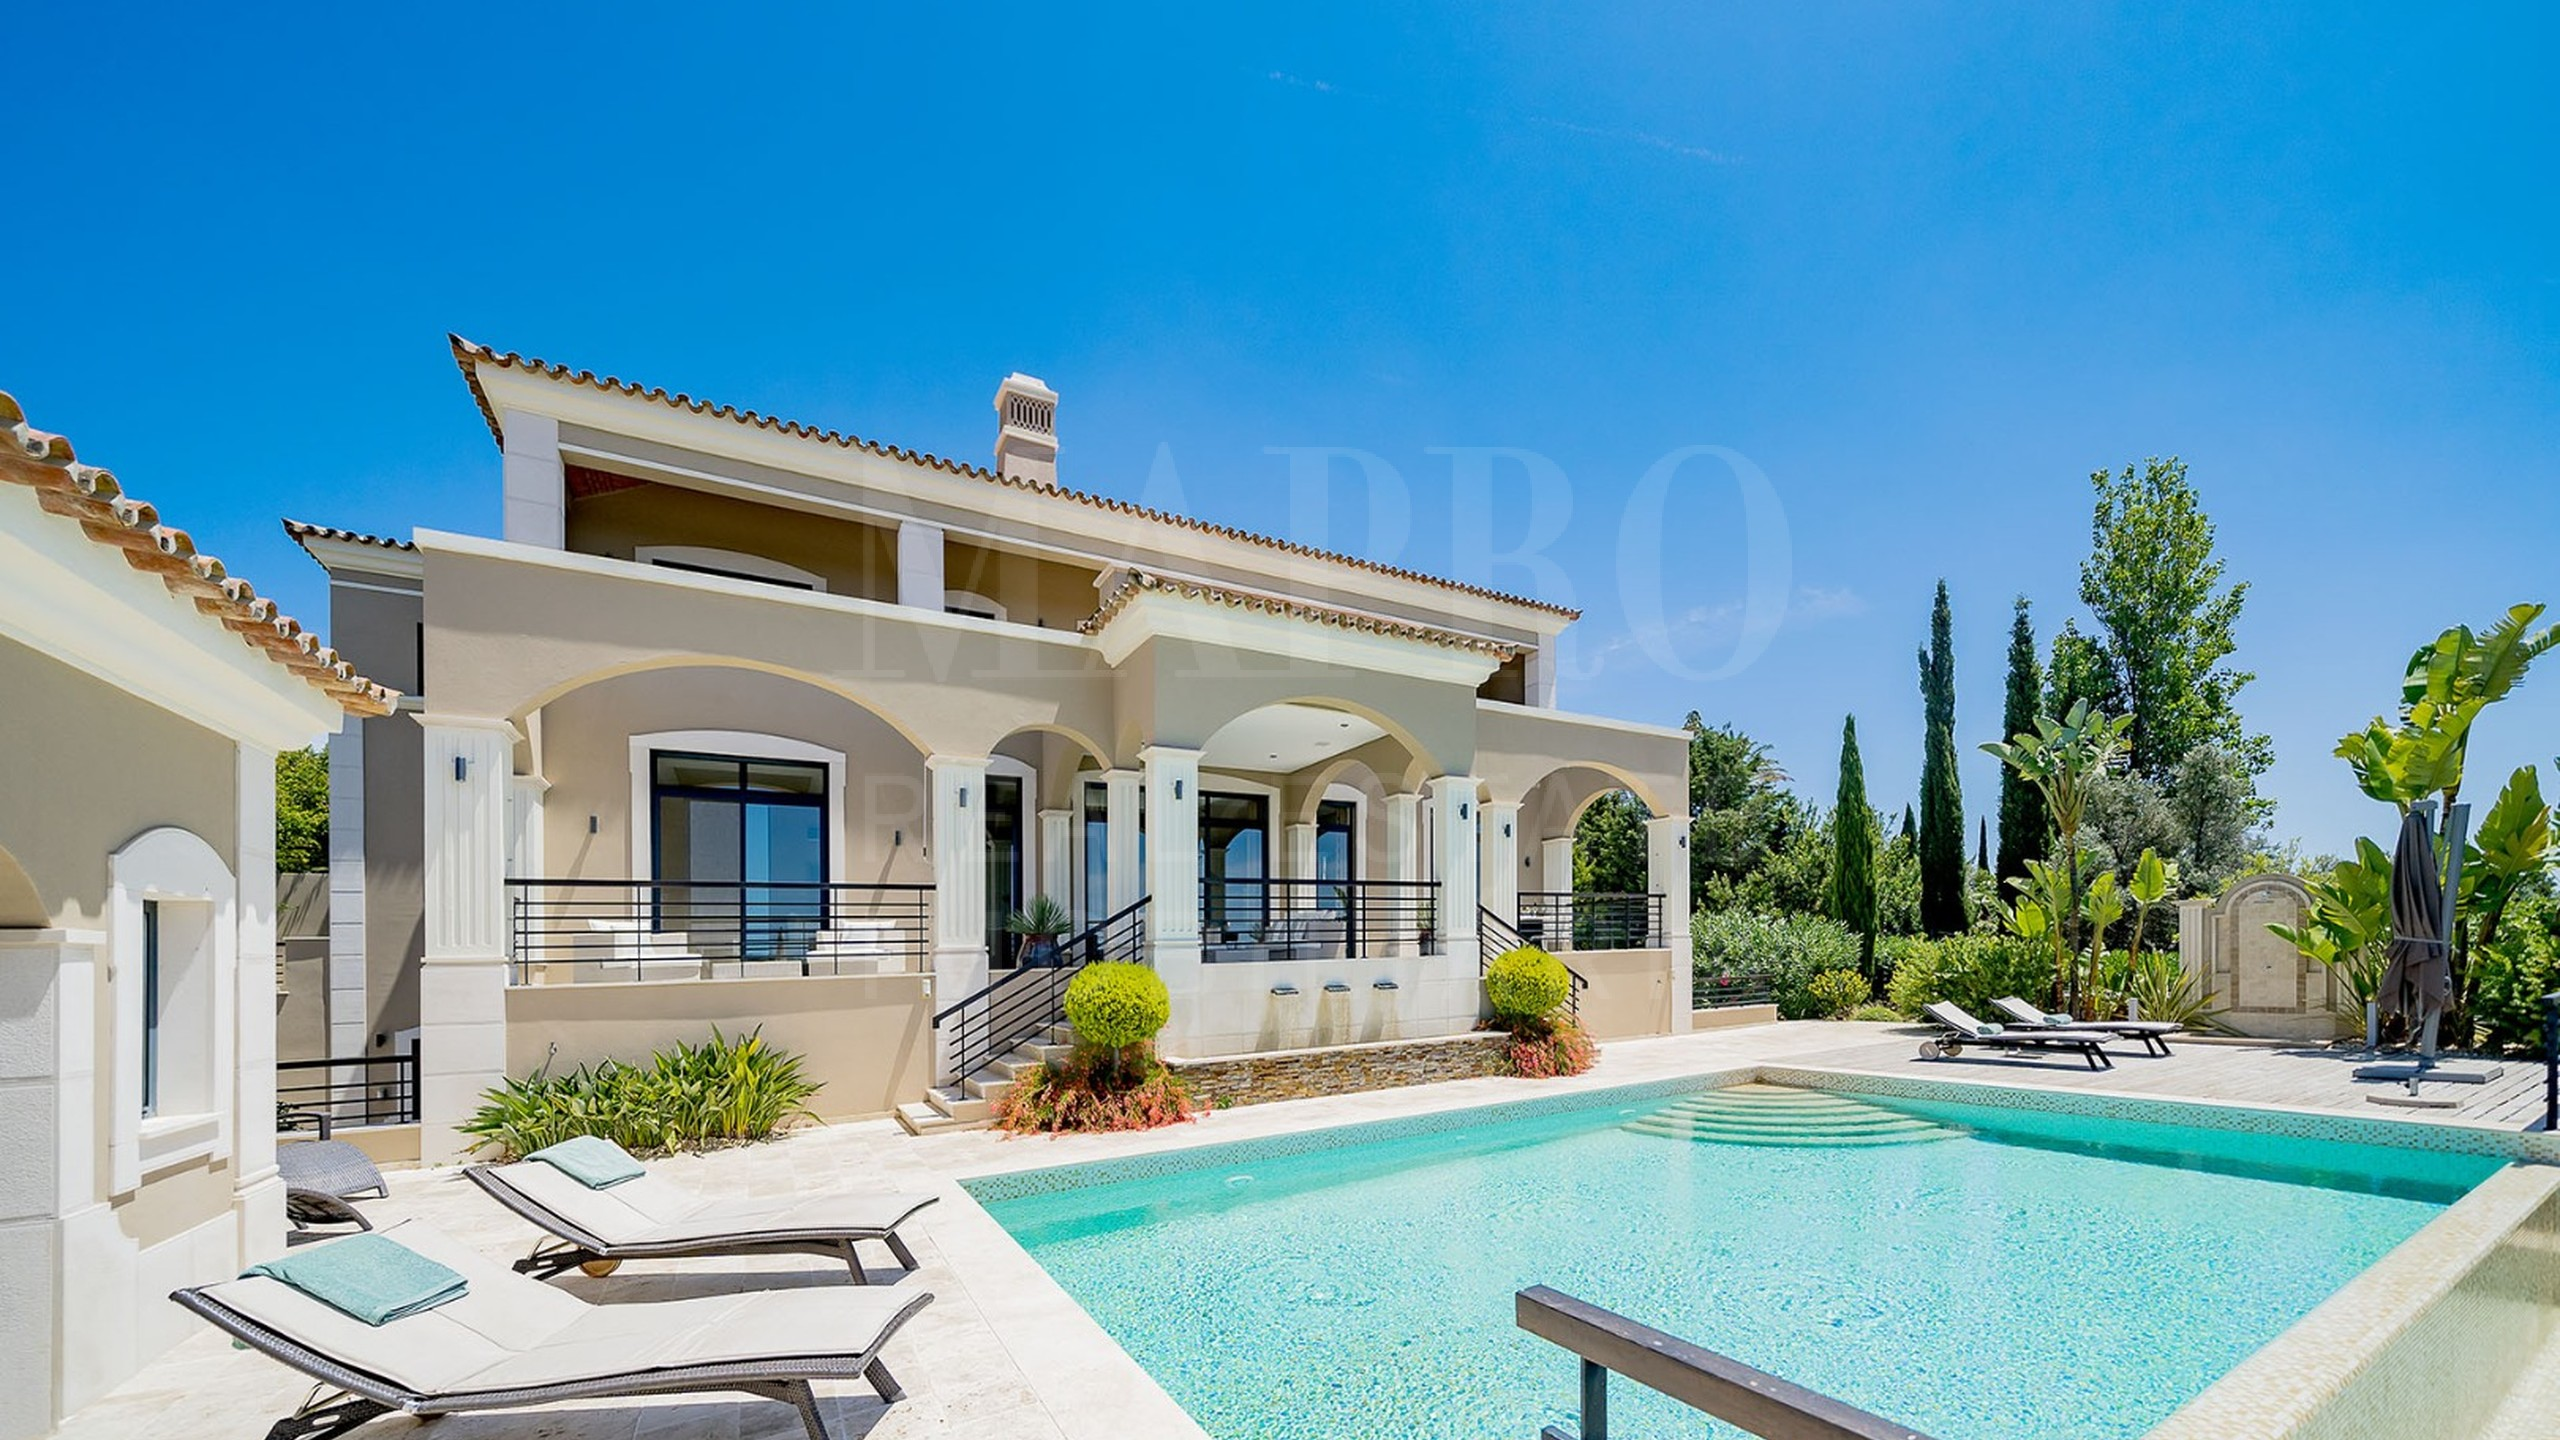 4+1 bedroom villa situated within the Vale Formoso area